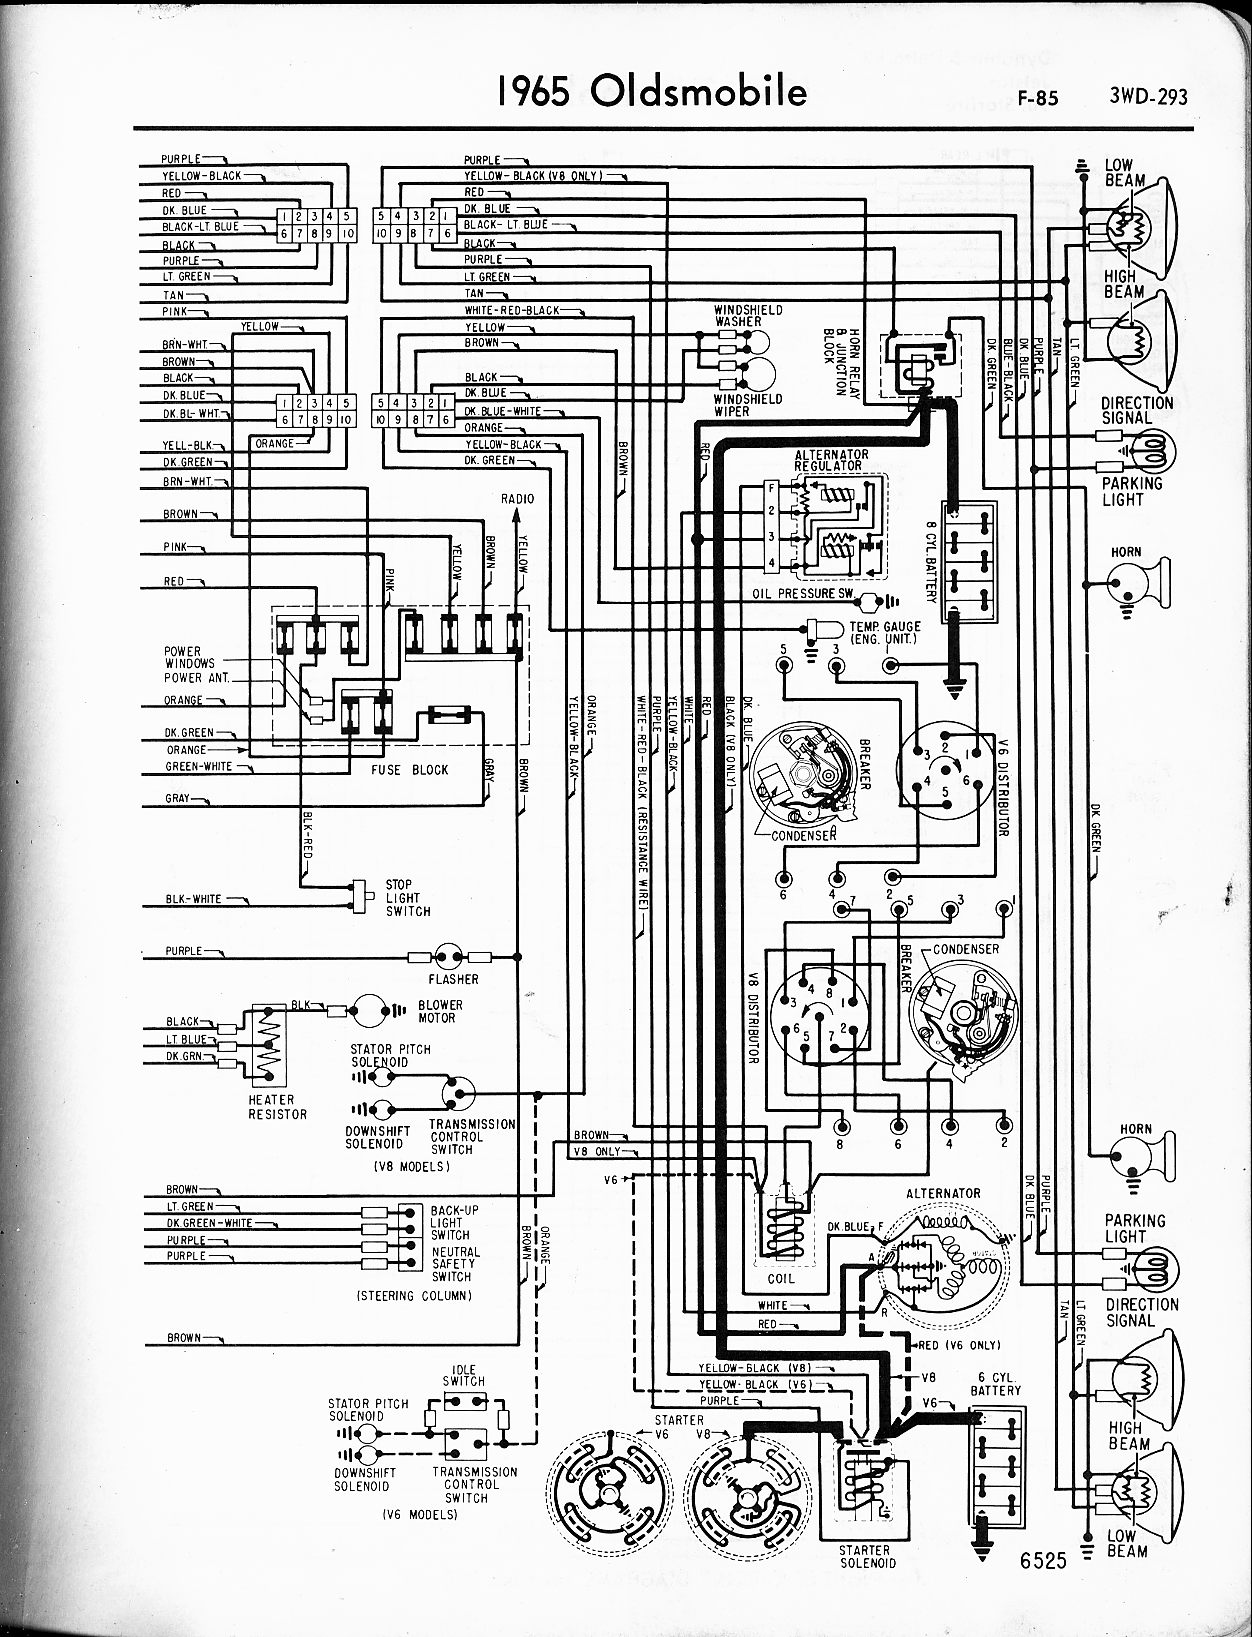 Wiring Diagram 1988 Oldsmobile 88 Diagrams 1937 Ford Ignition 1974 Delta Distributors Electrical Wire Distributor